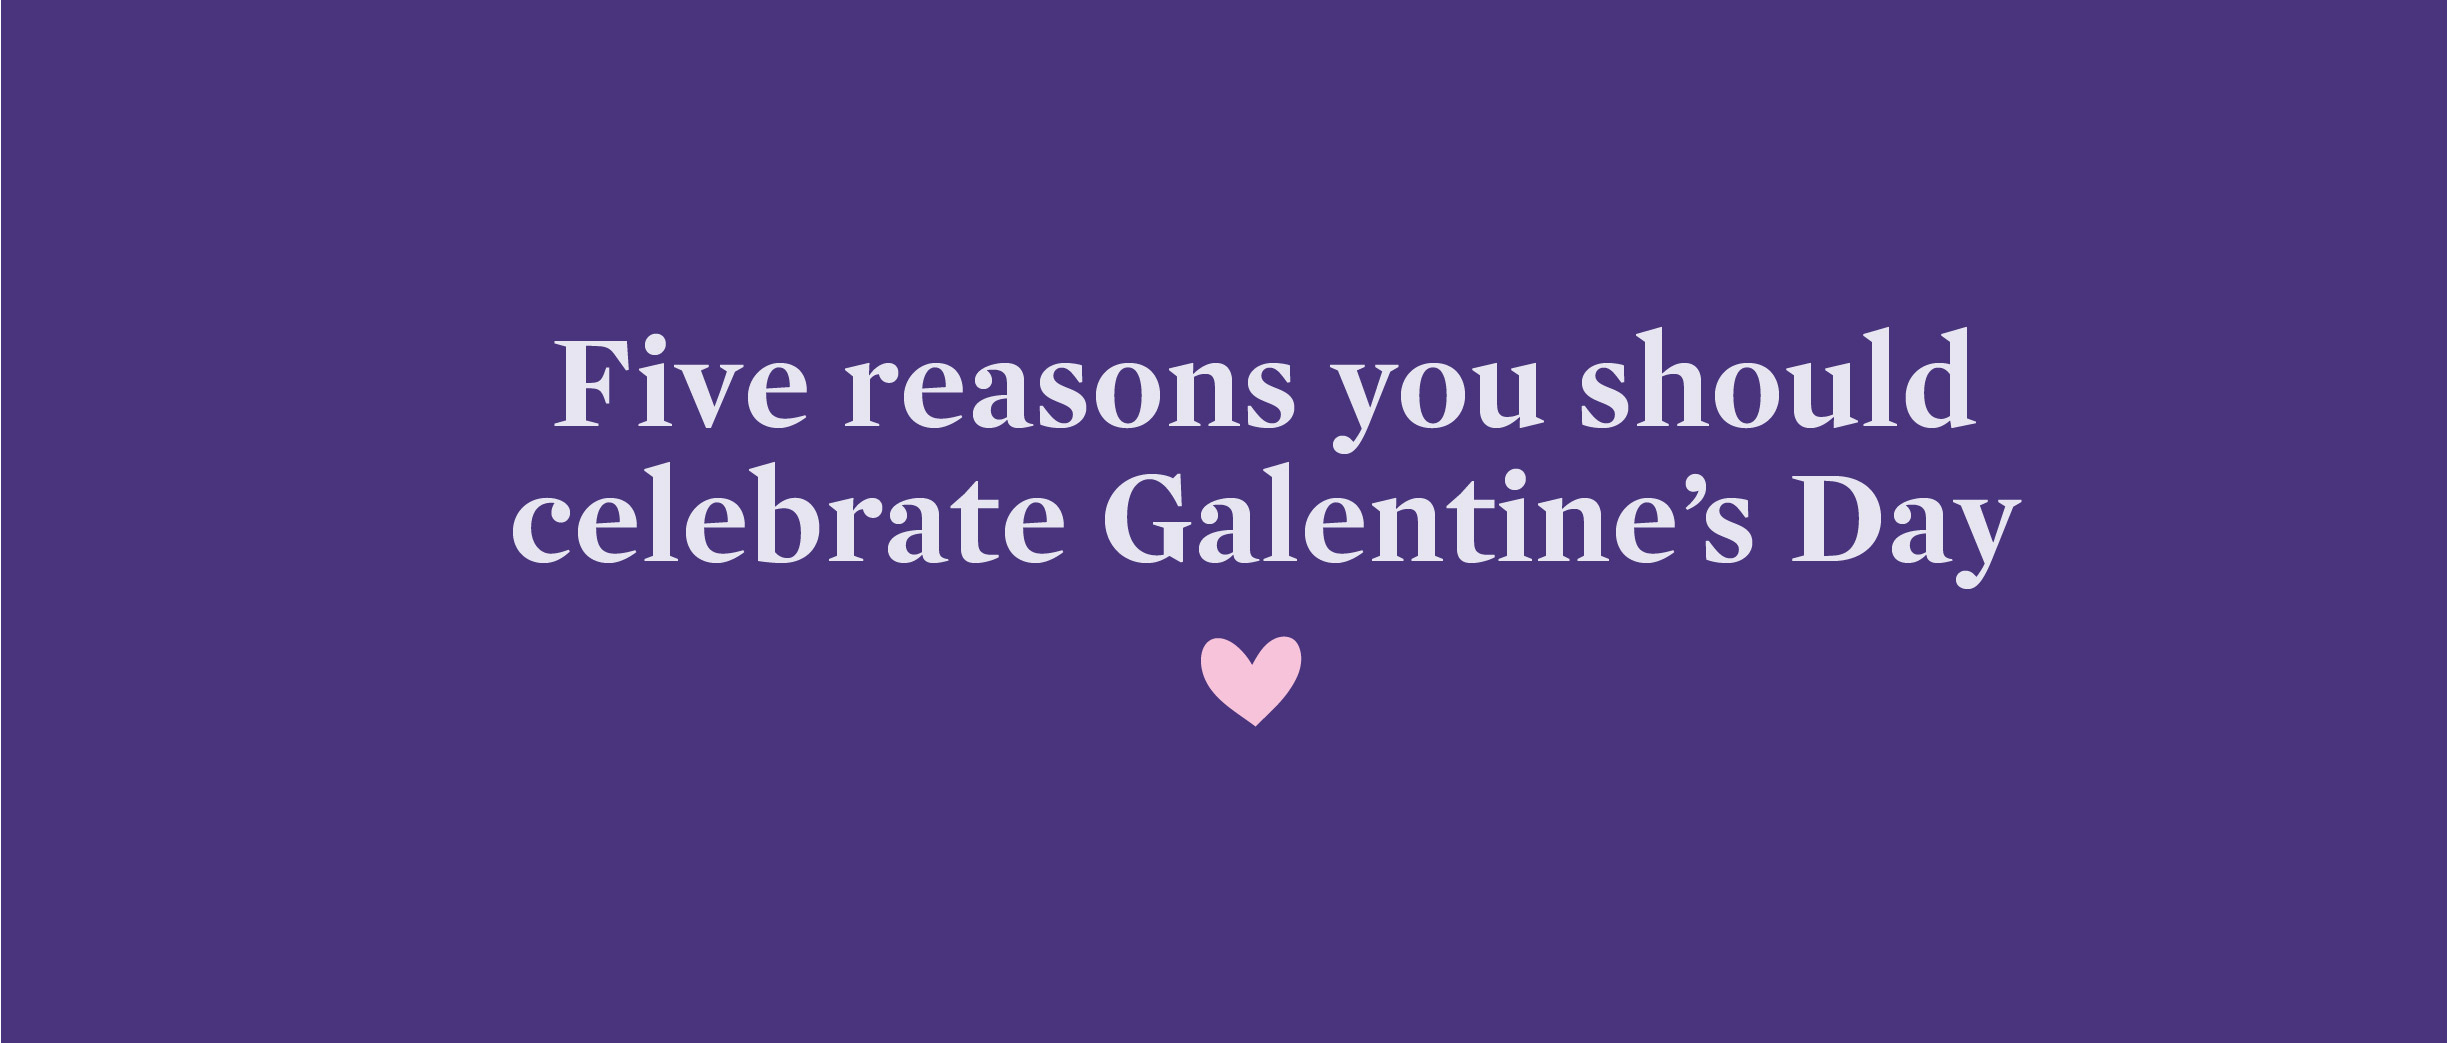 Five reasons to celebrate Galentine's Day